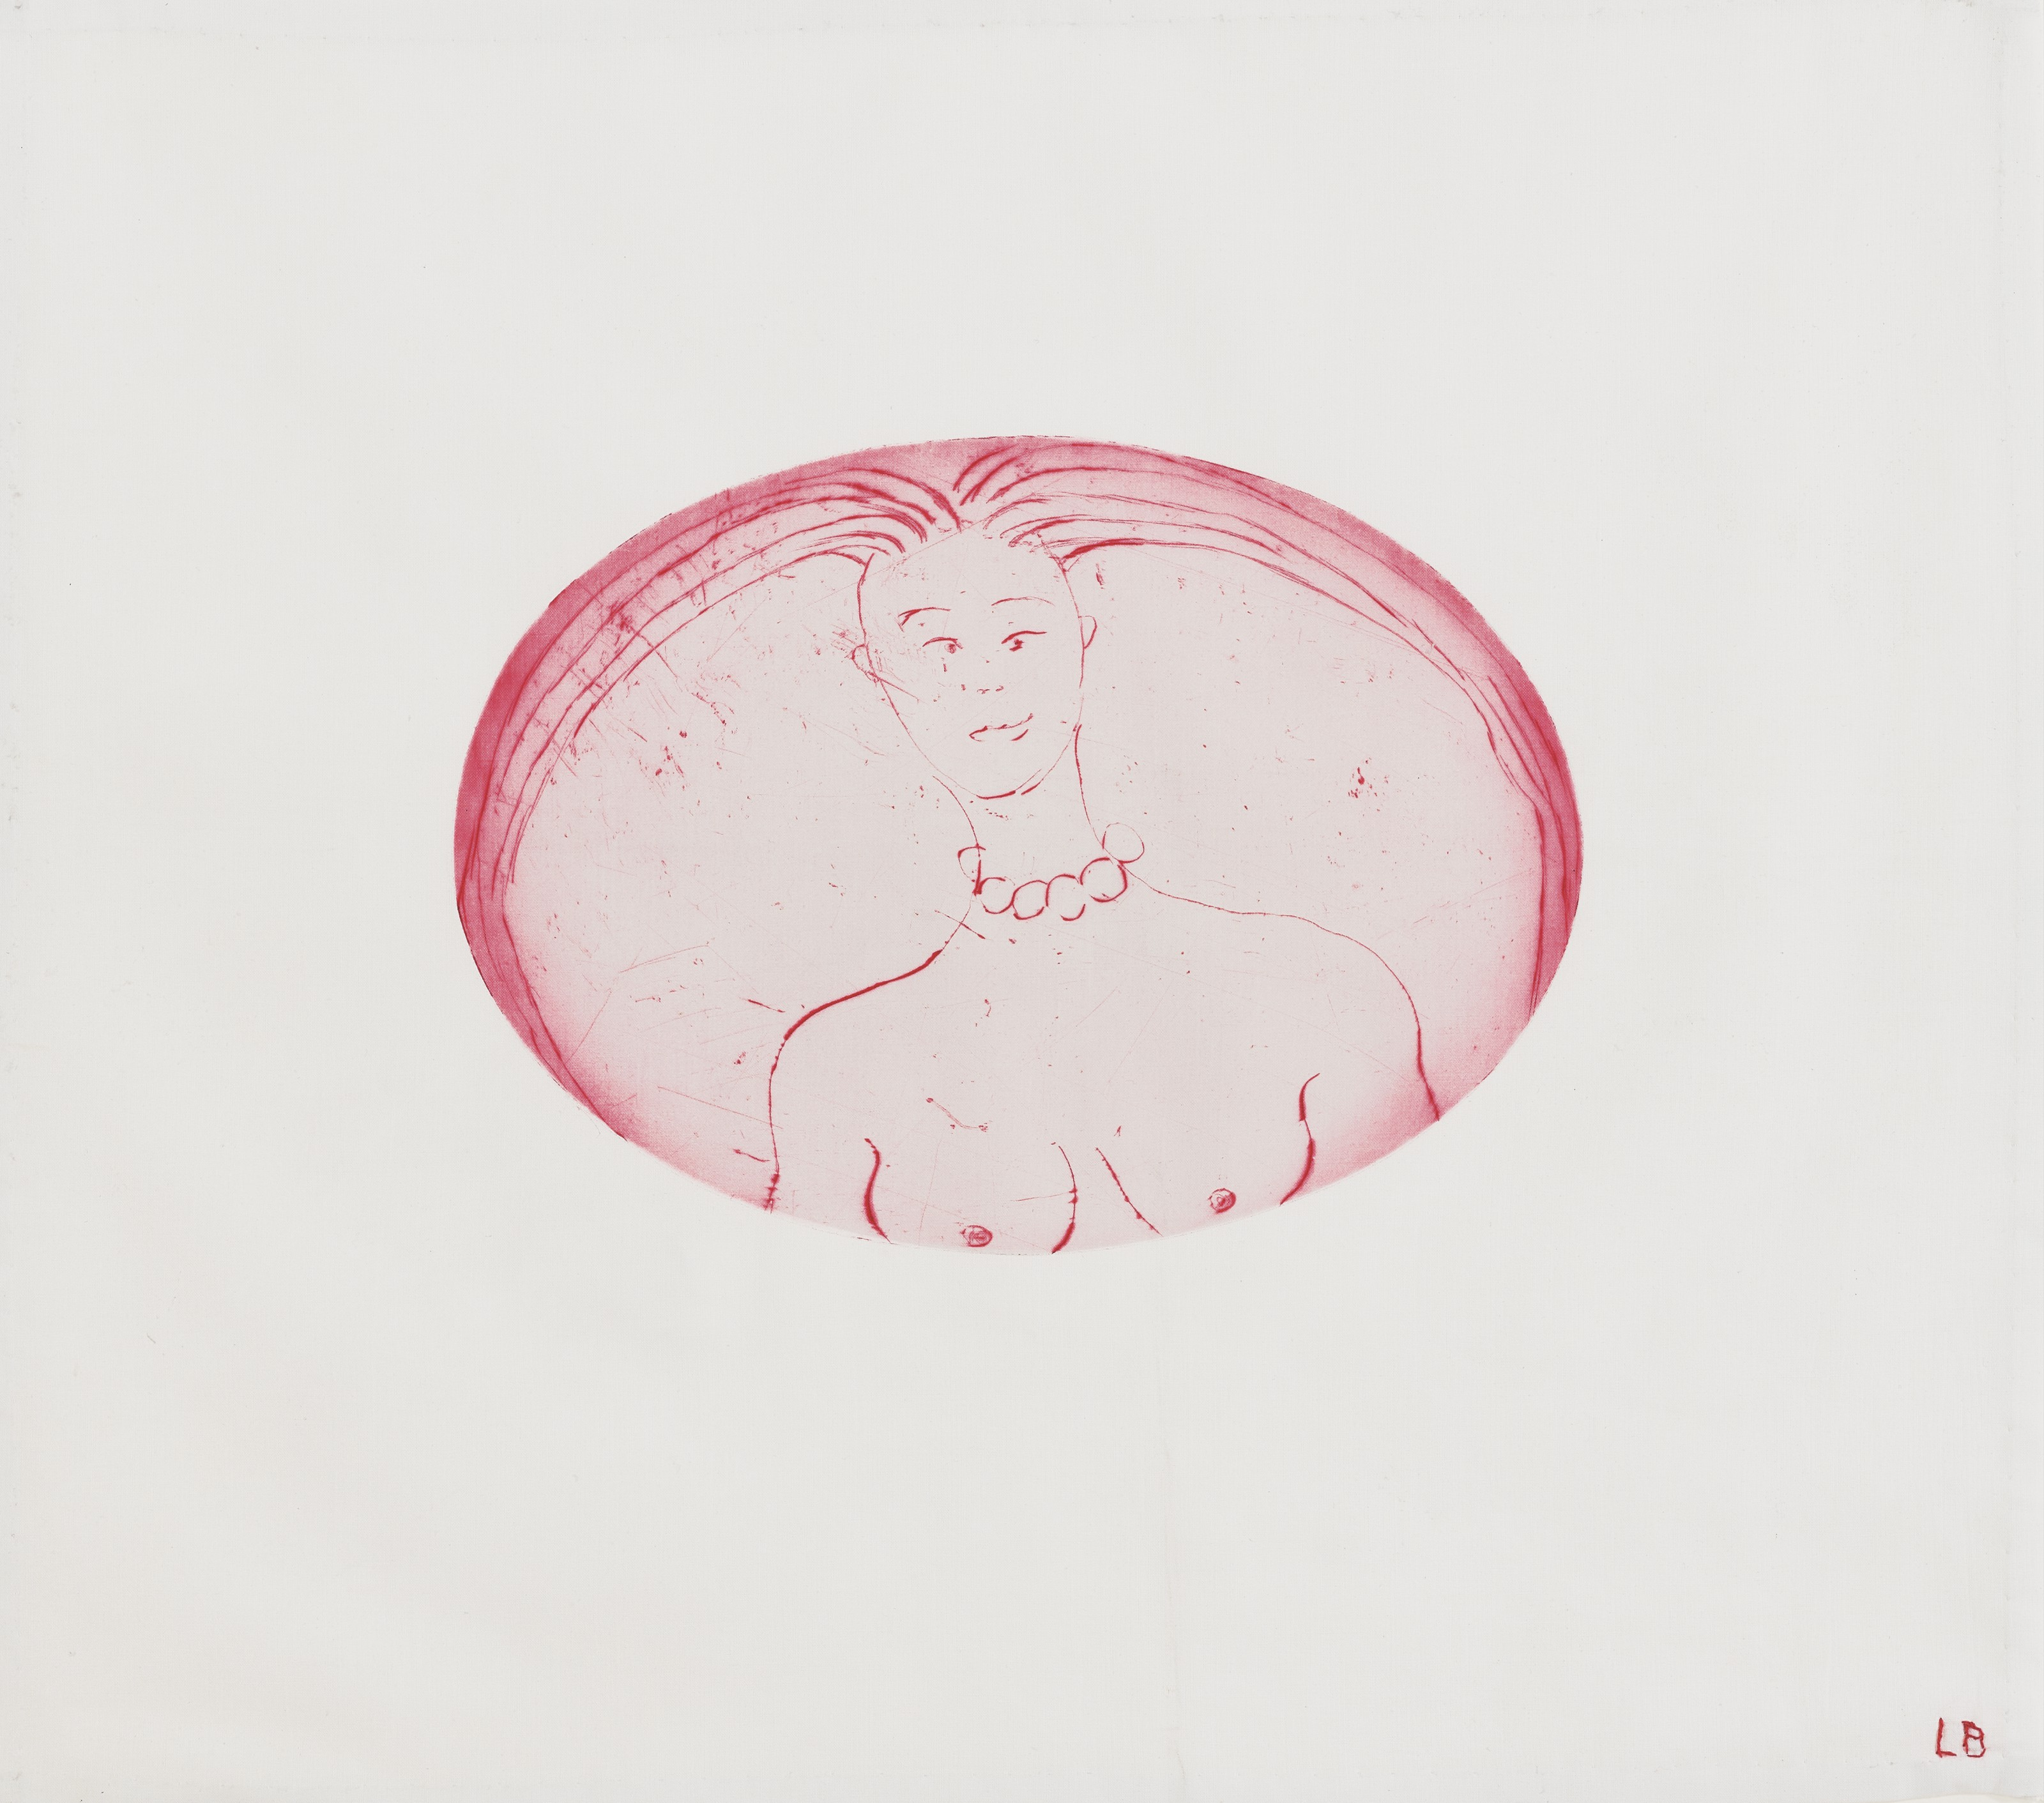 Louise Bourgeois (1911–2010), The cross-eyed woman I, 2004. Drypoint printed on fabric. 15⅛ x 17¼  in (38.4 x 43.8  cm). Estimate €6,000-8,000. Offered in Women in Art on 16 June 2021 at Christie's in Paris